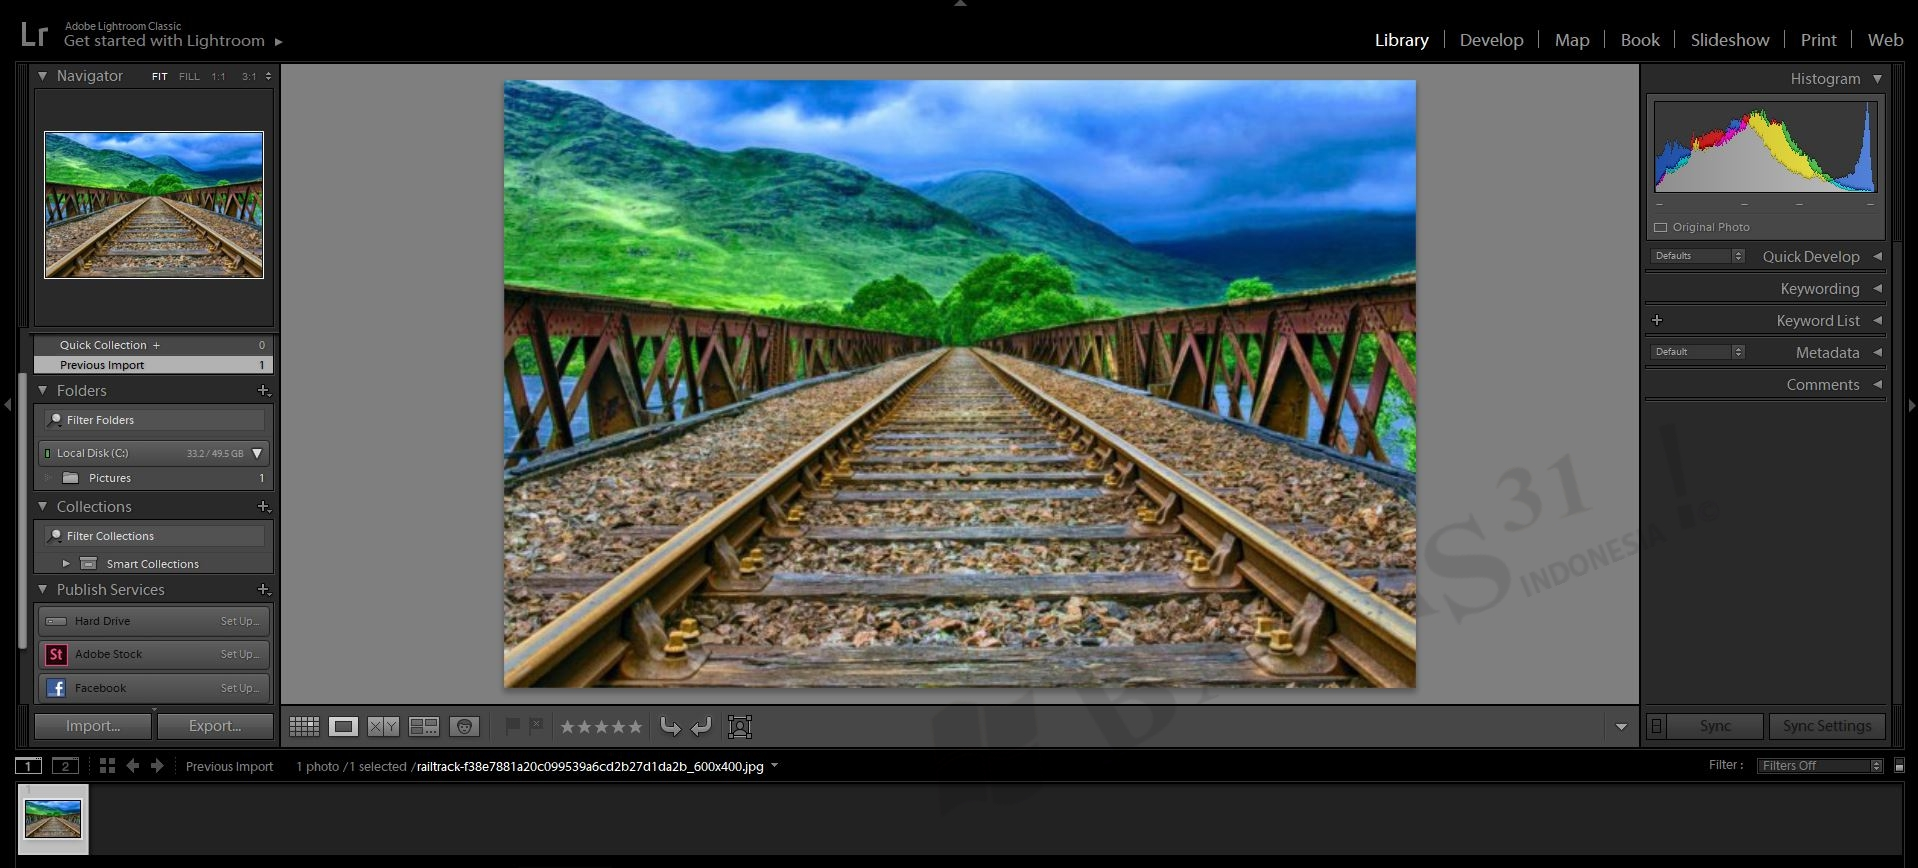 Adobe Photoshop Lightroom Classic CC 2020 9.0.0.10 Full Version 4